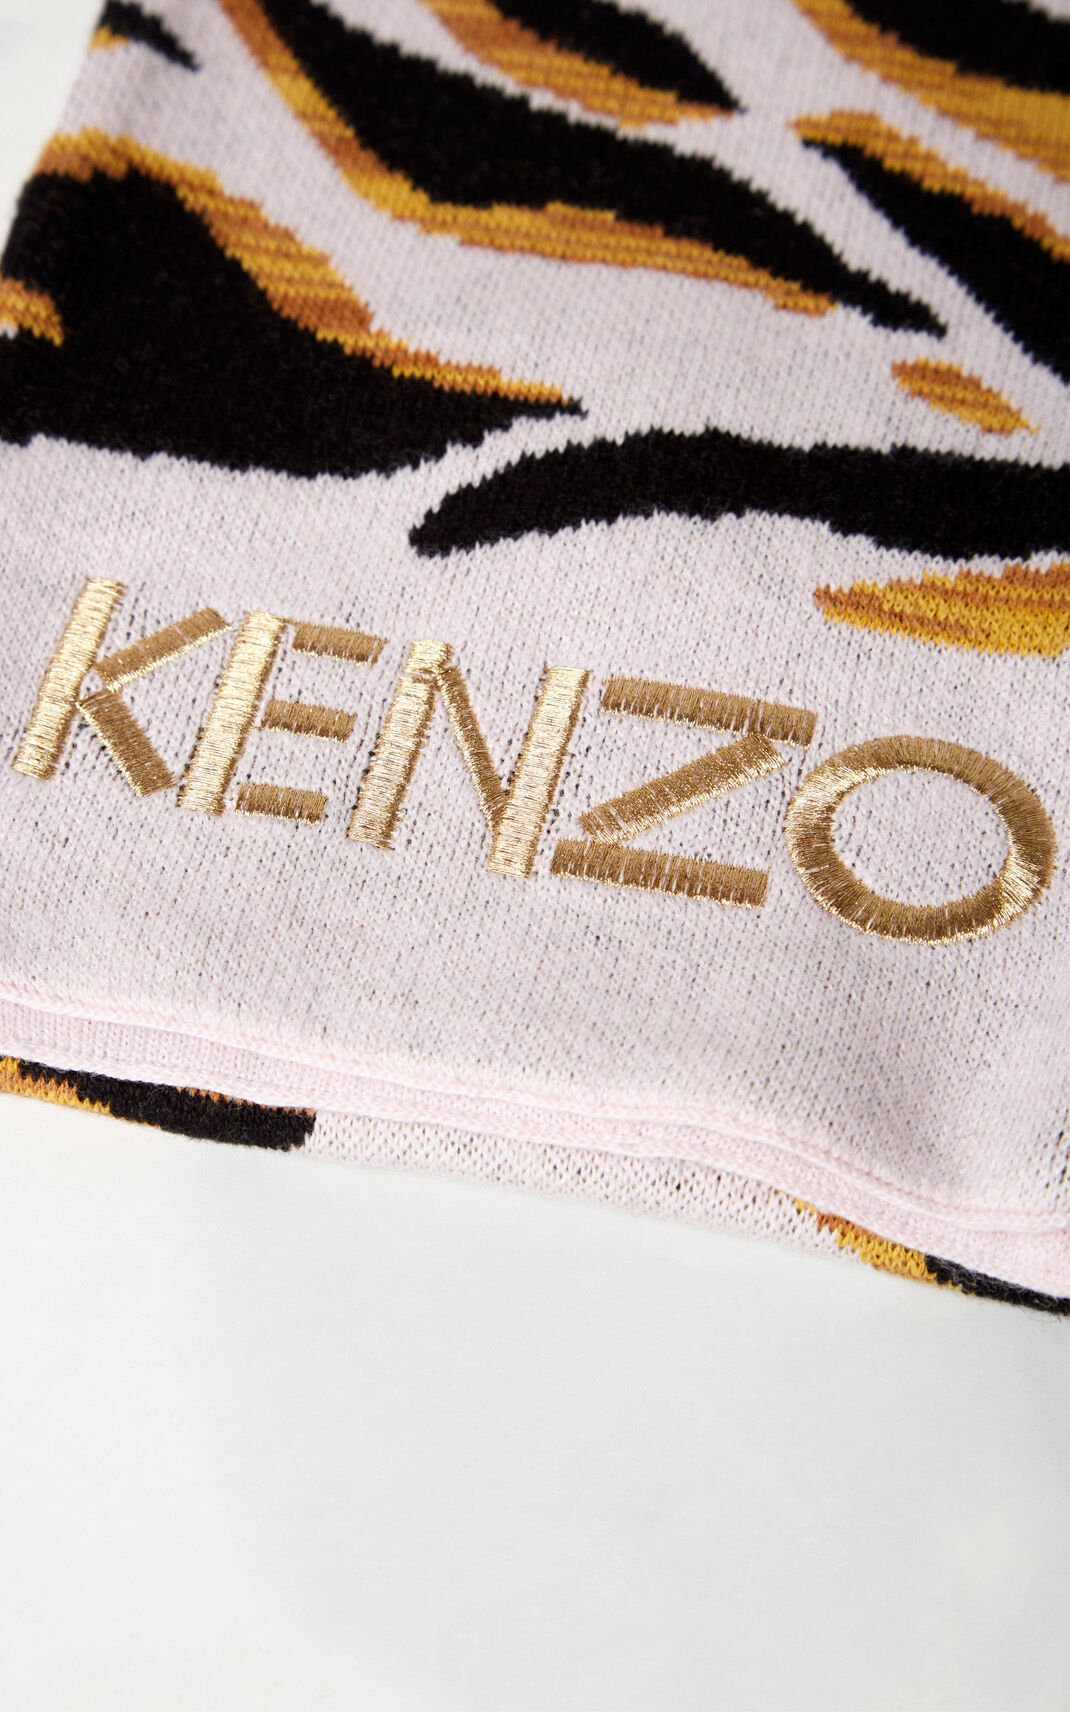 PEARL GREY Tiger Stripes 'scarf for women KENZO